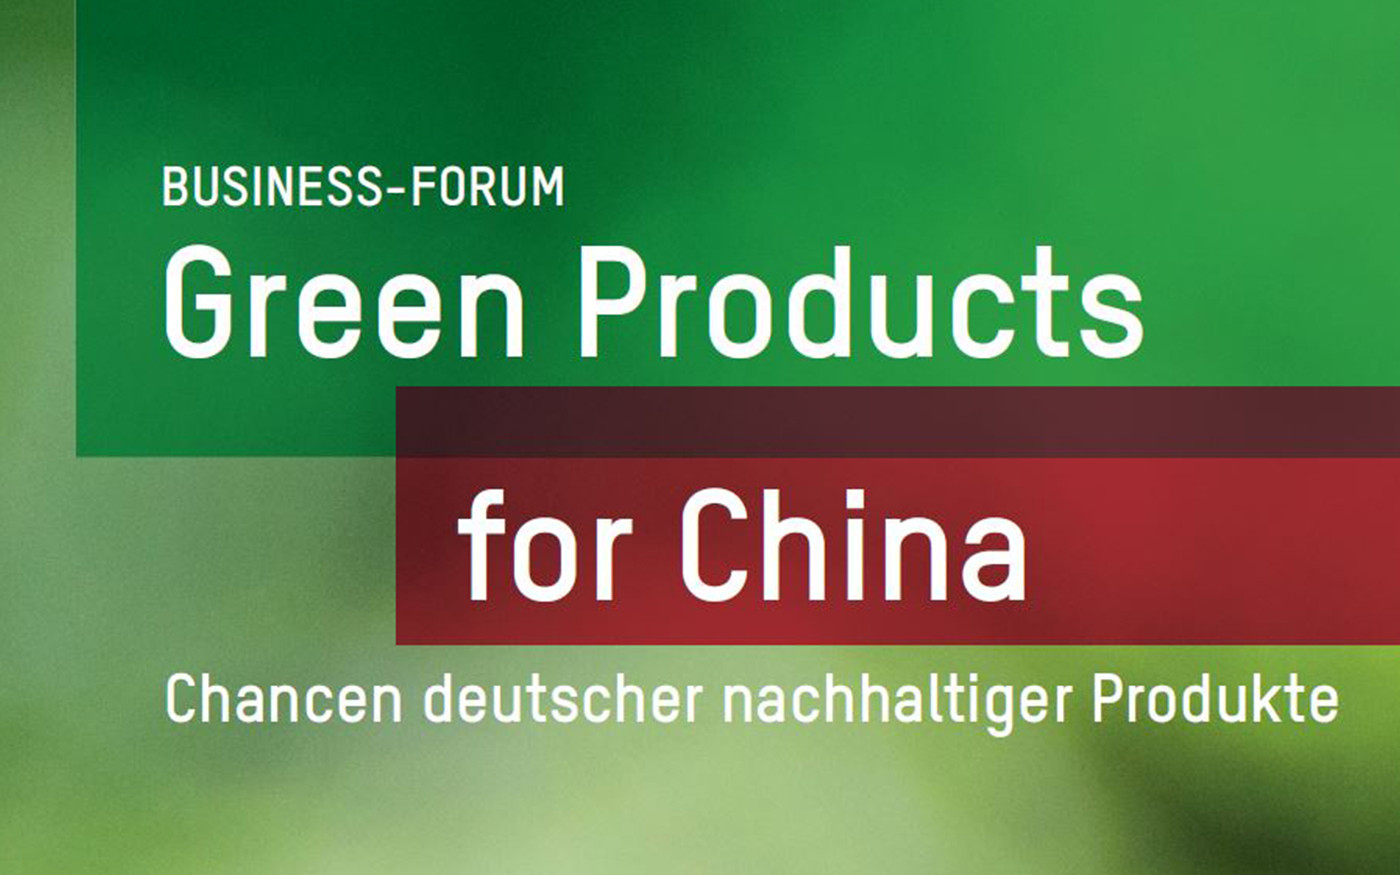 Green Products for China